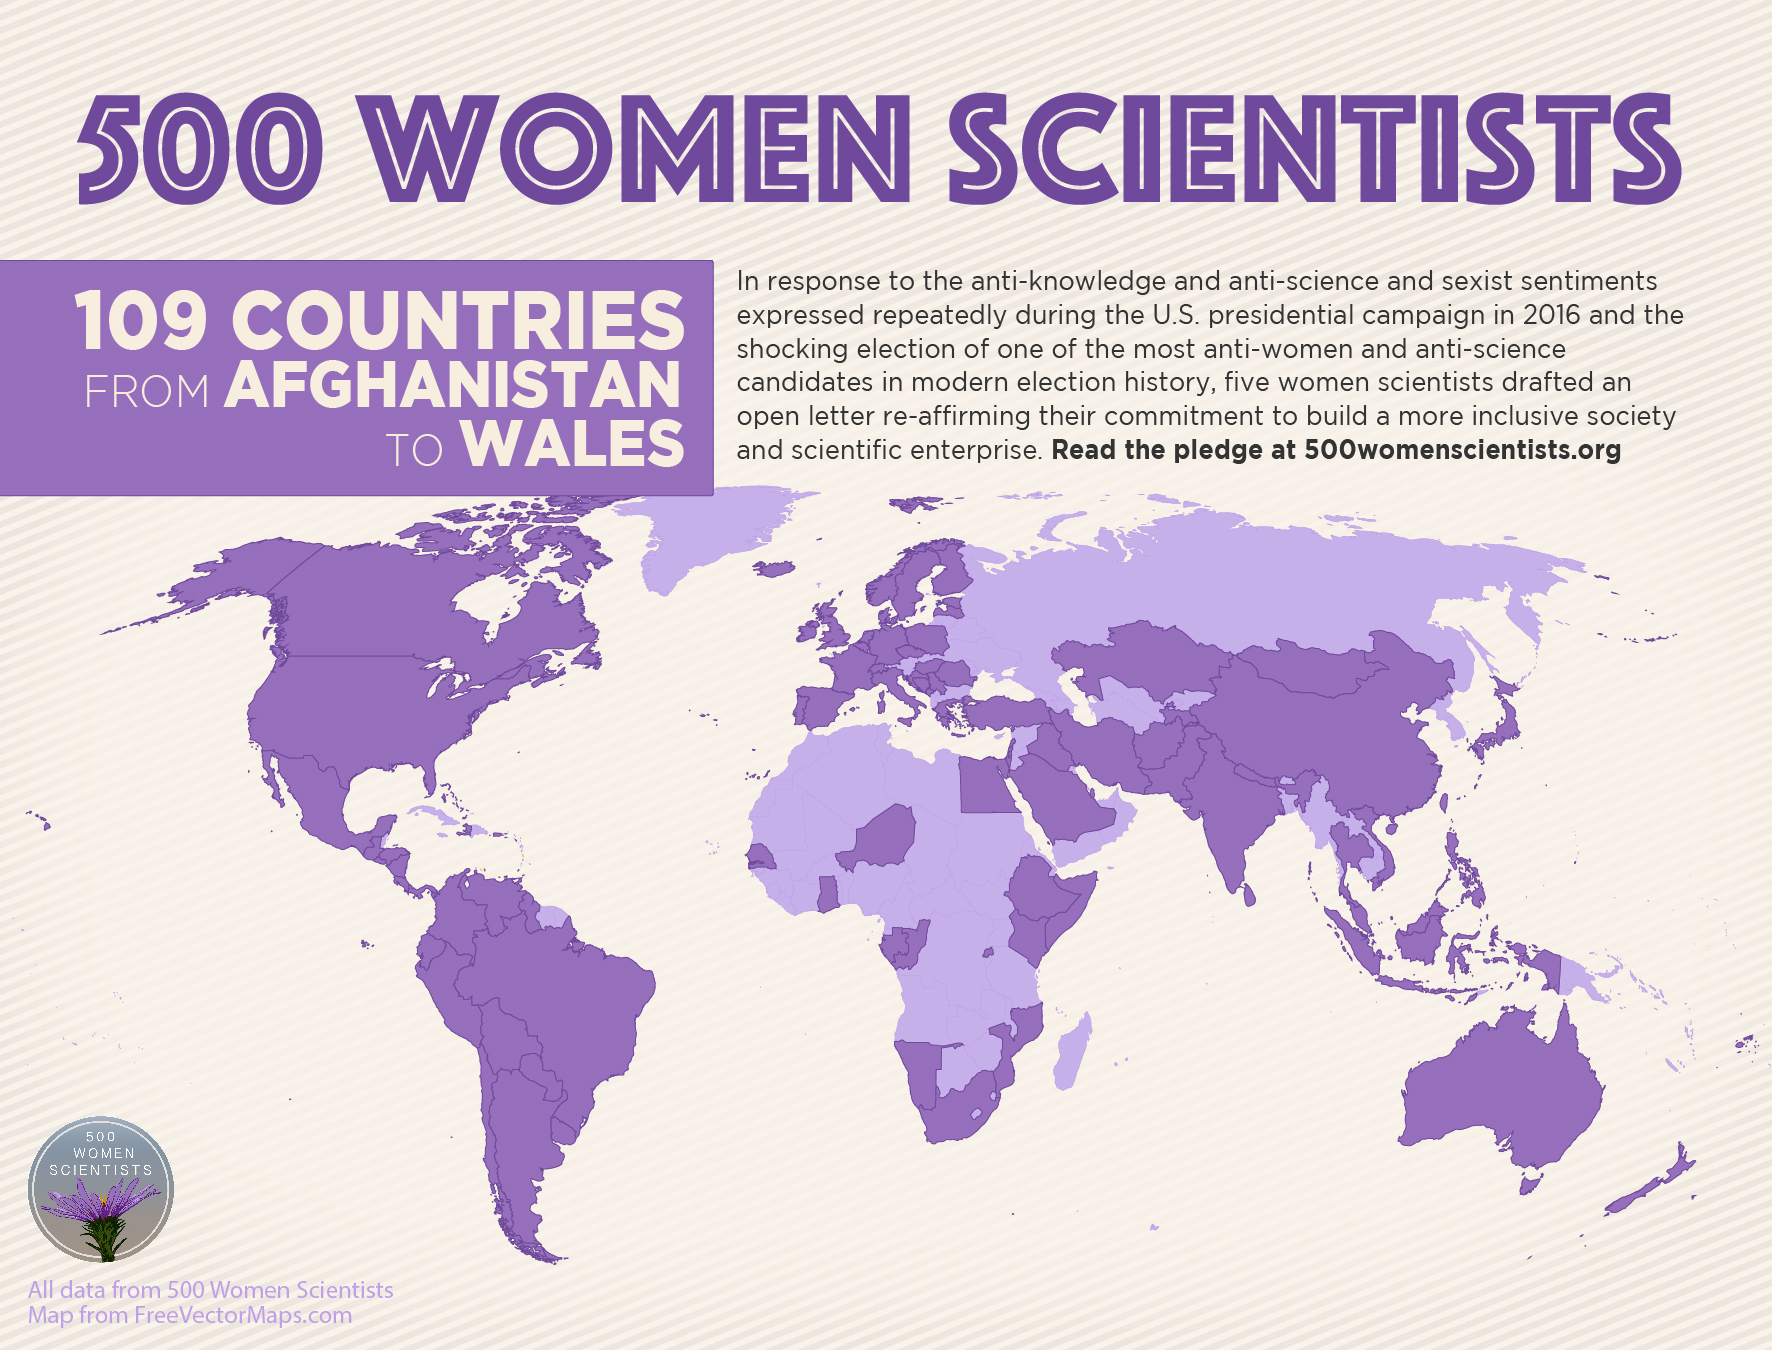 Signatories — 500 Women Scientists on